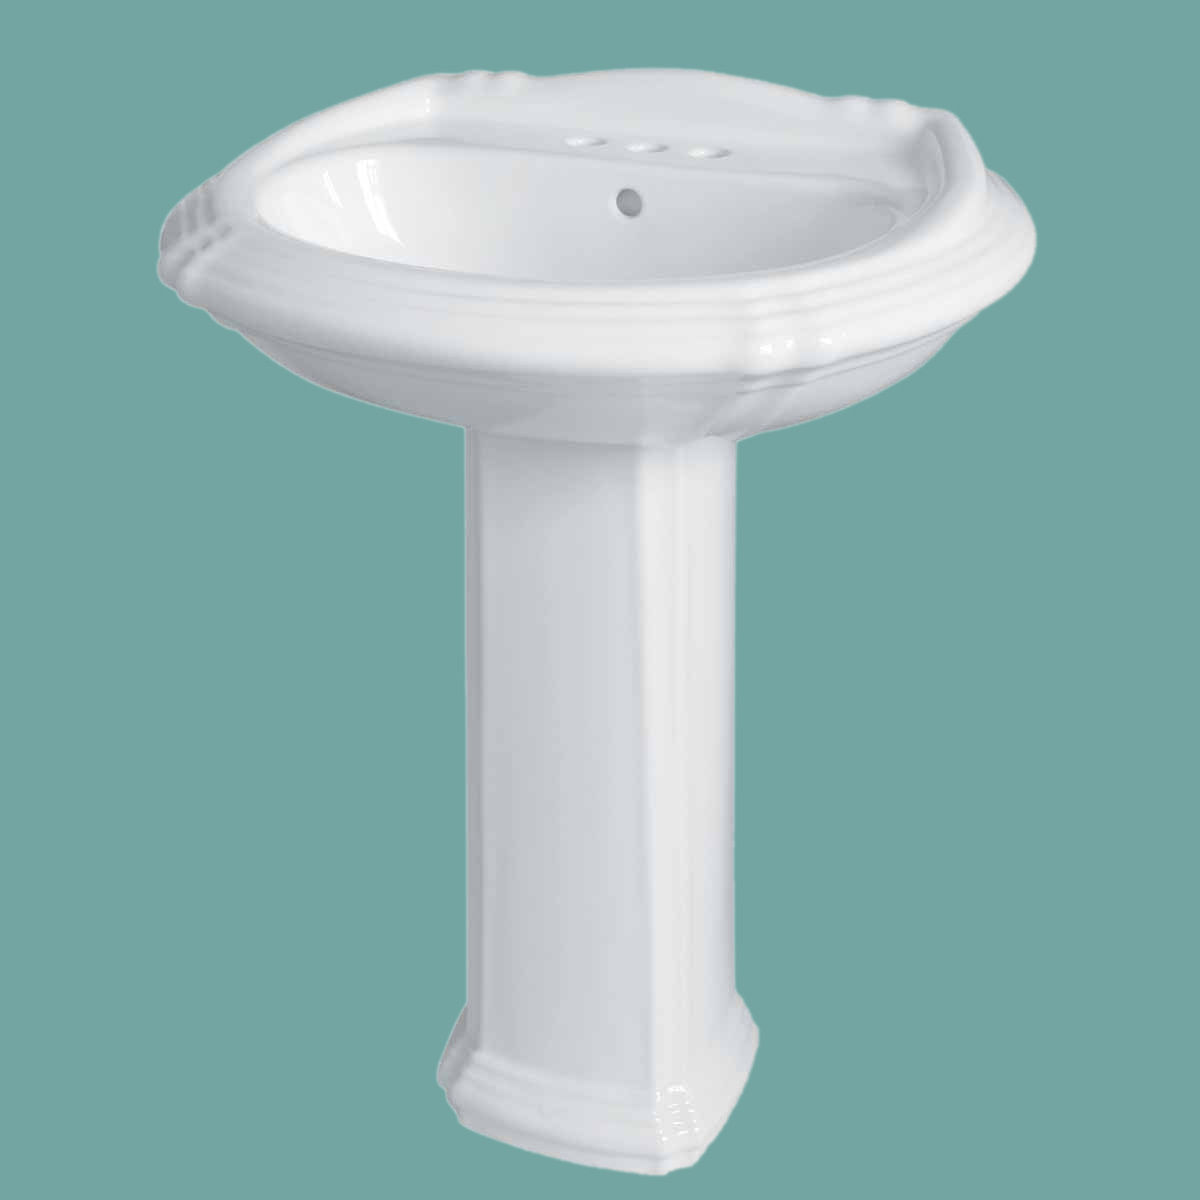 Victorian Bathroom Sink : Victorian Pedestal Bathroom Sink White Deluxe Centerset Renovators ...